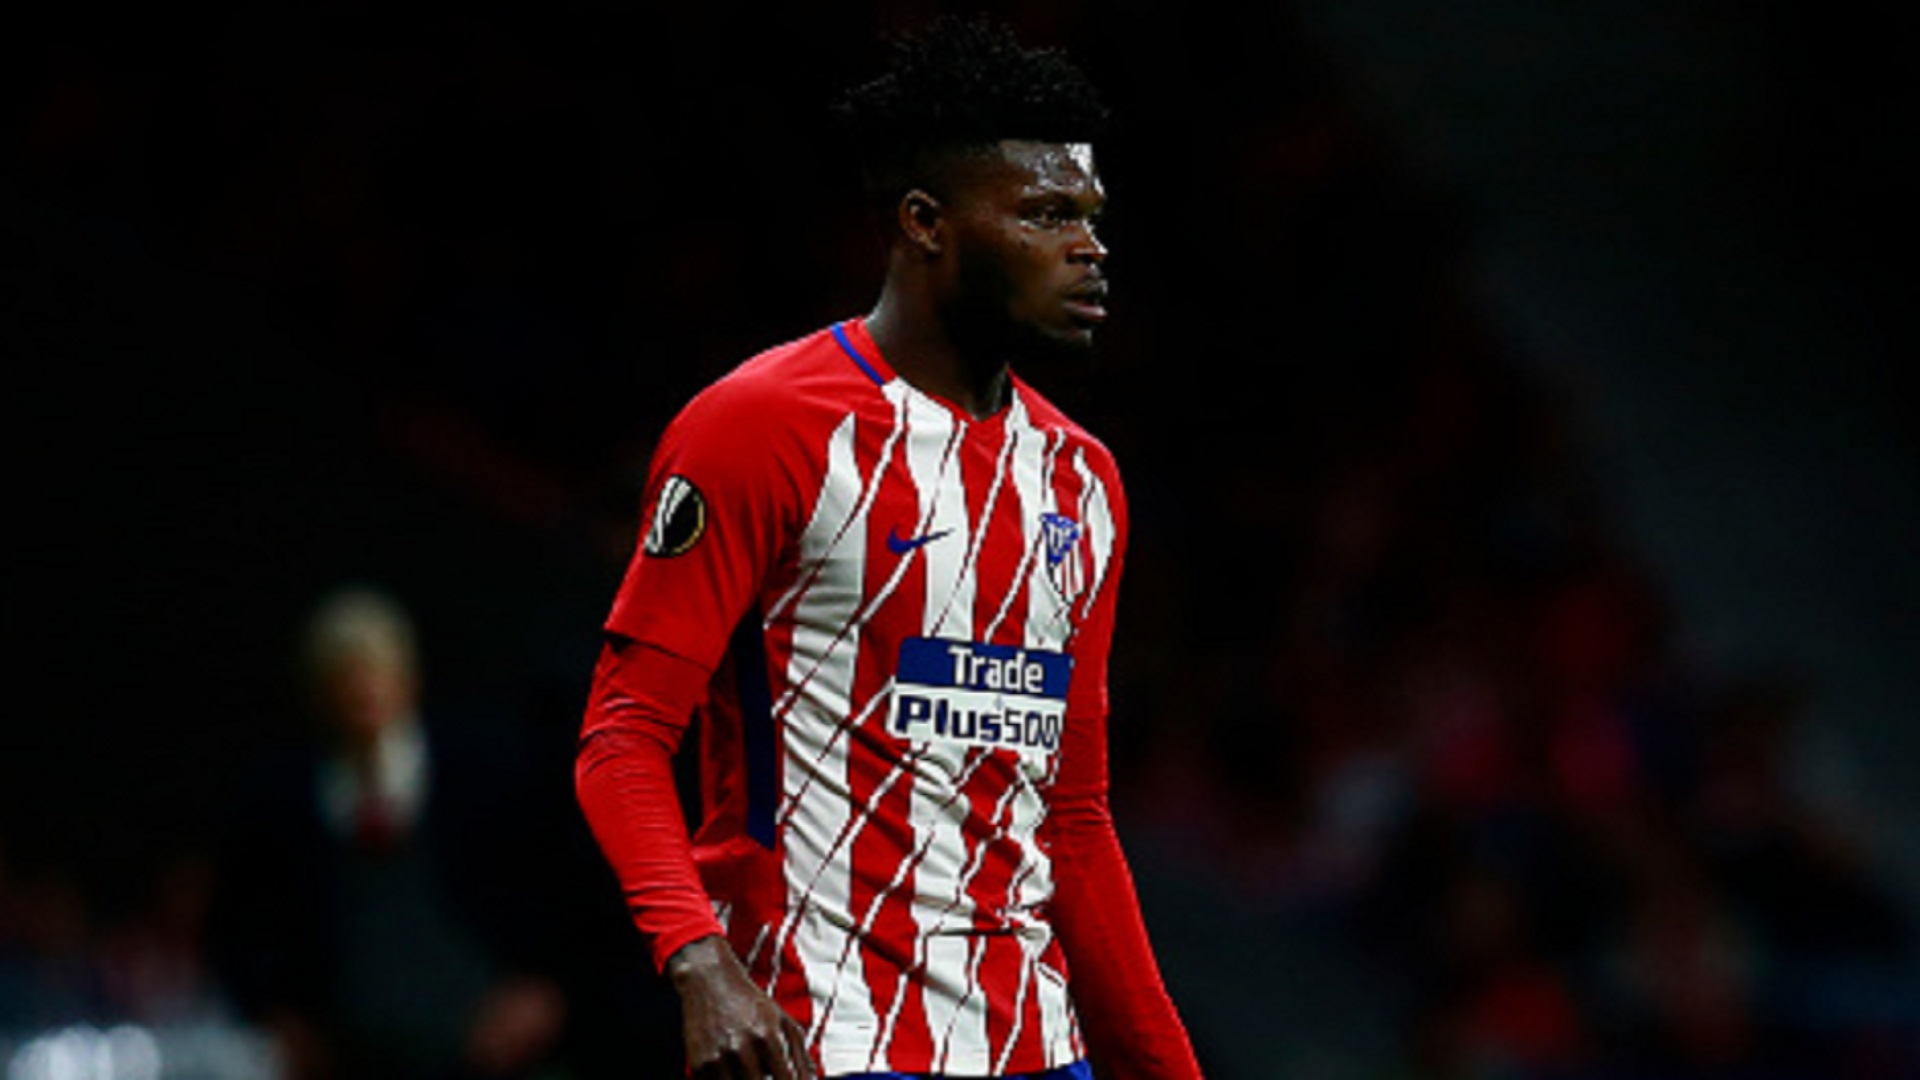 Thomas Partey of Atletico Madrid Match of the second leg of the UEFA Europa League semi-final between Atletico Madrid and Arsenal FC